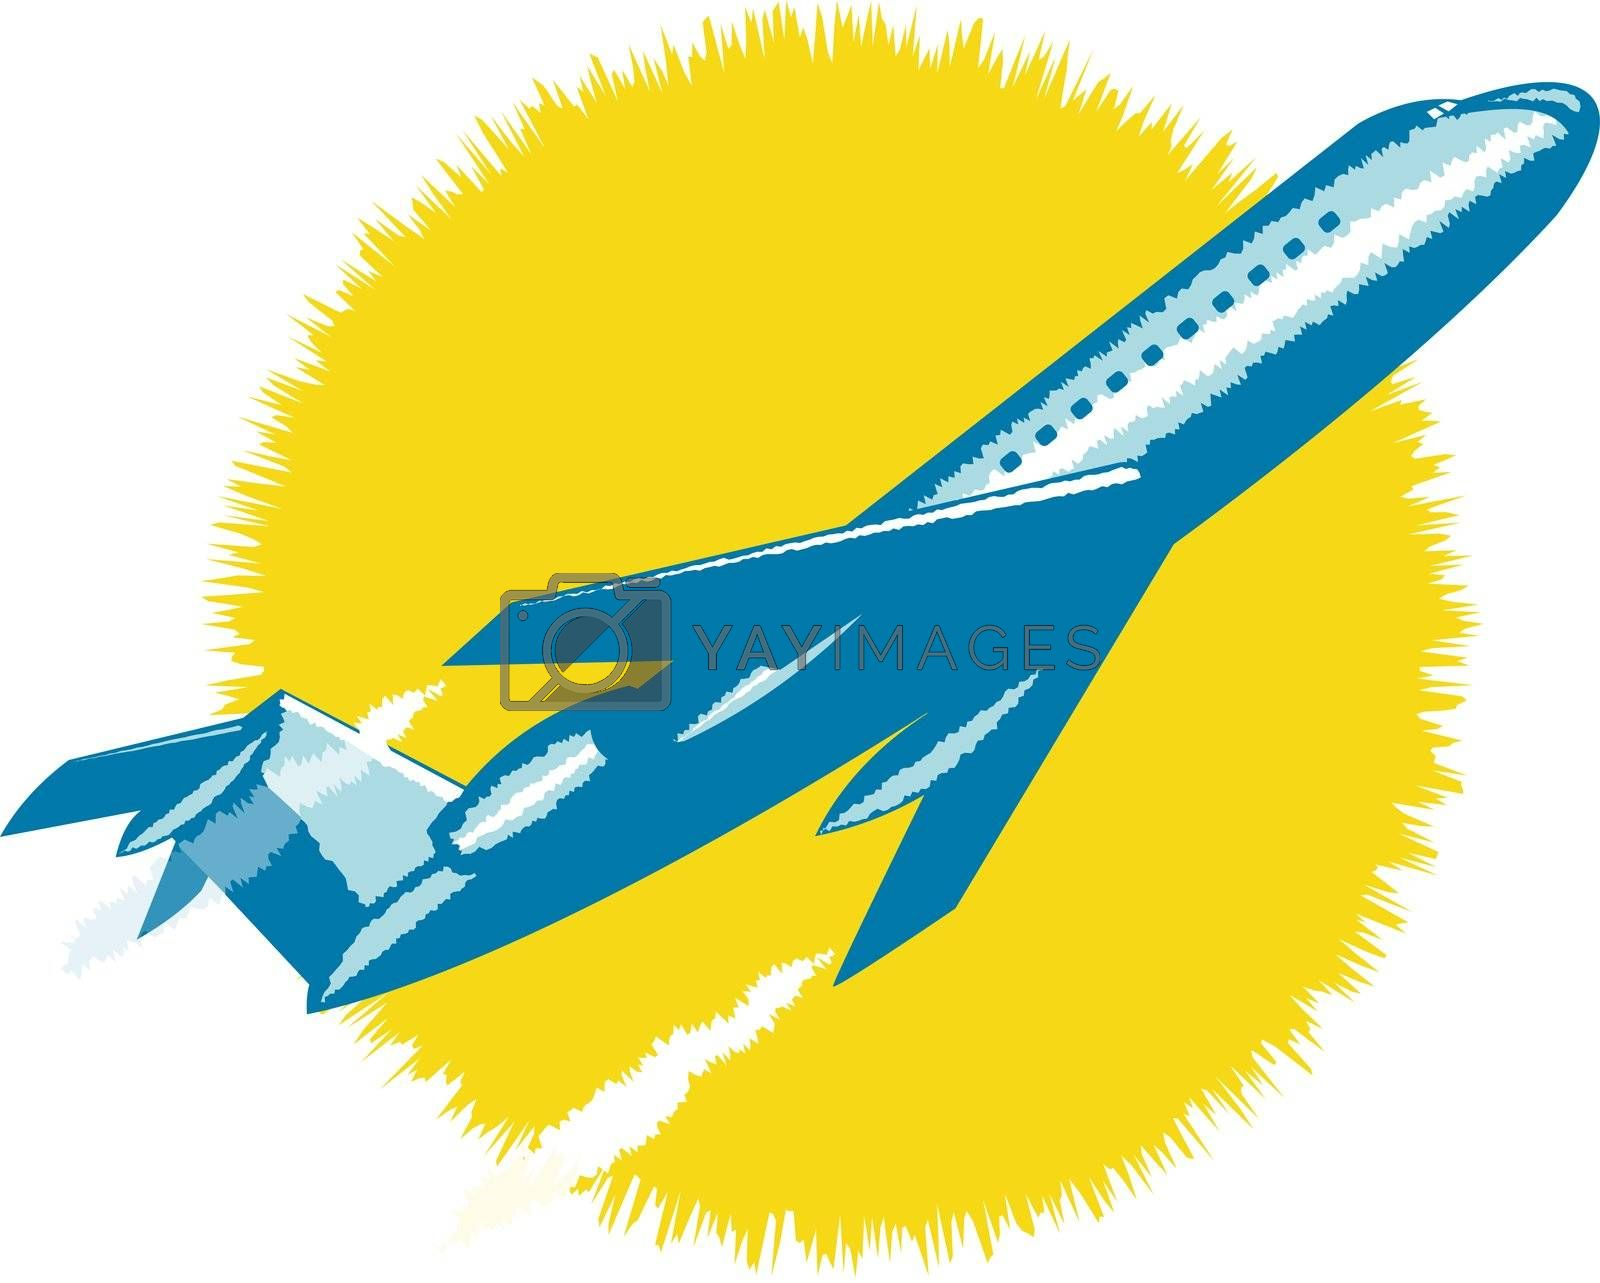 illustration of a commercial jet plane airliner taking off  isolated background